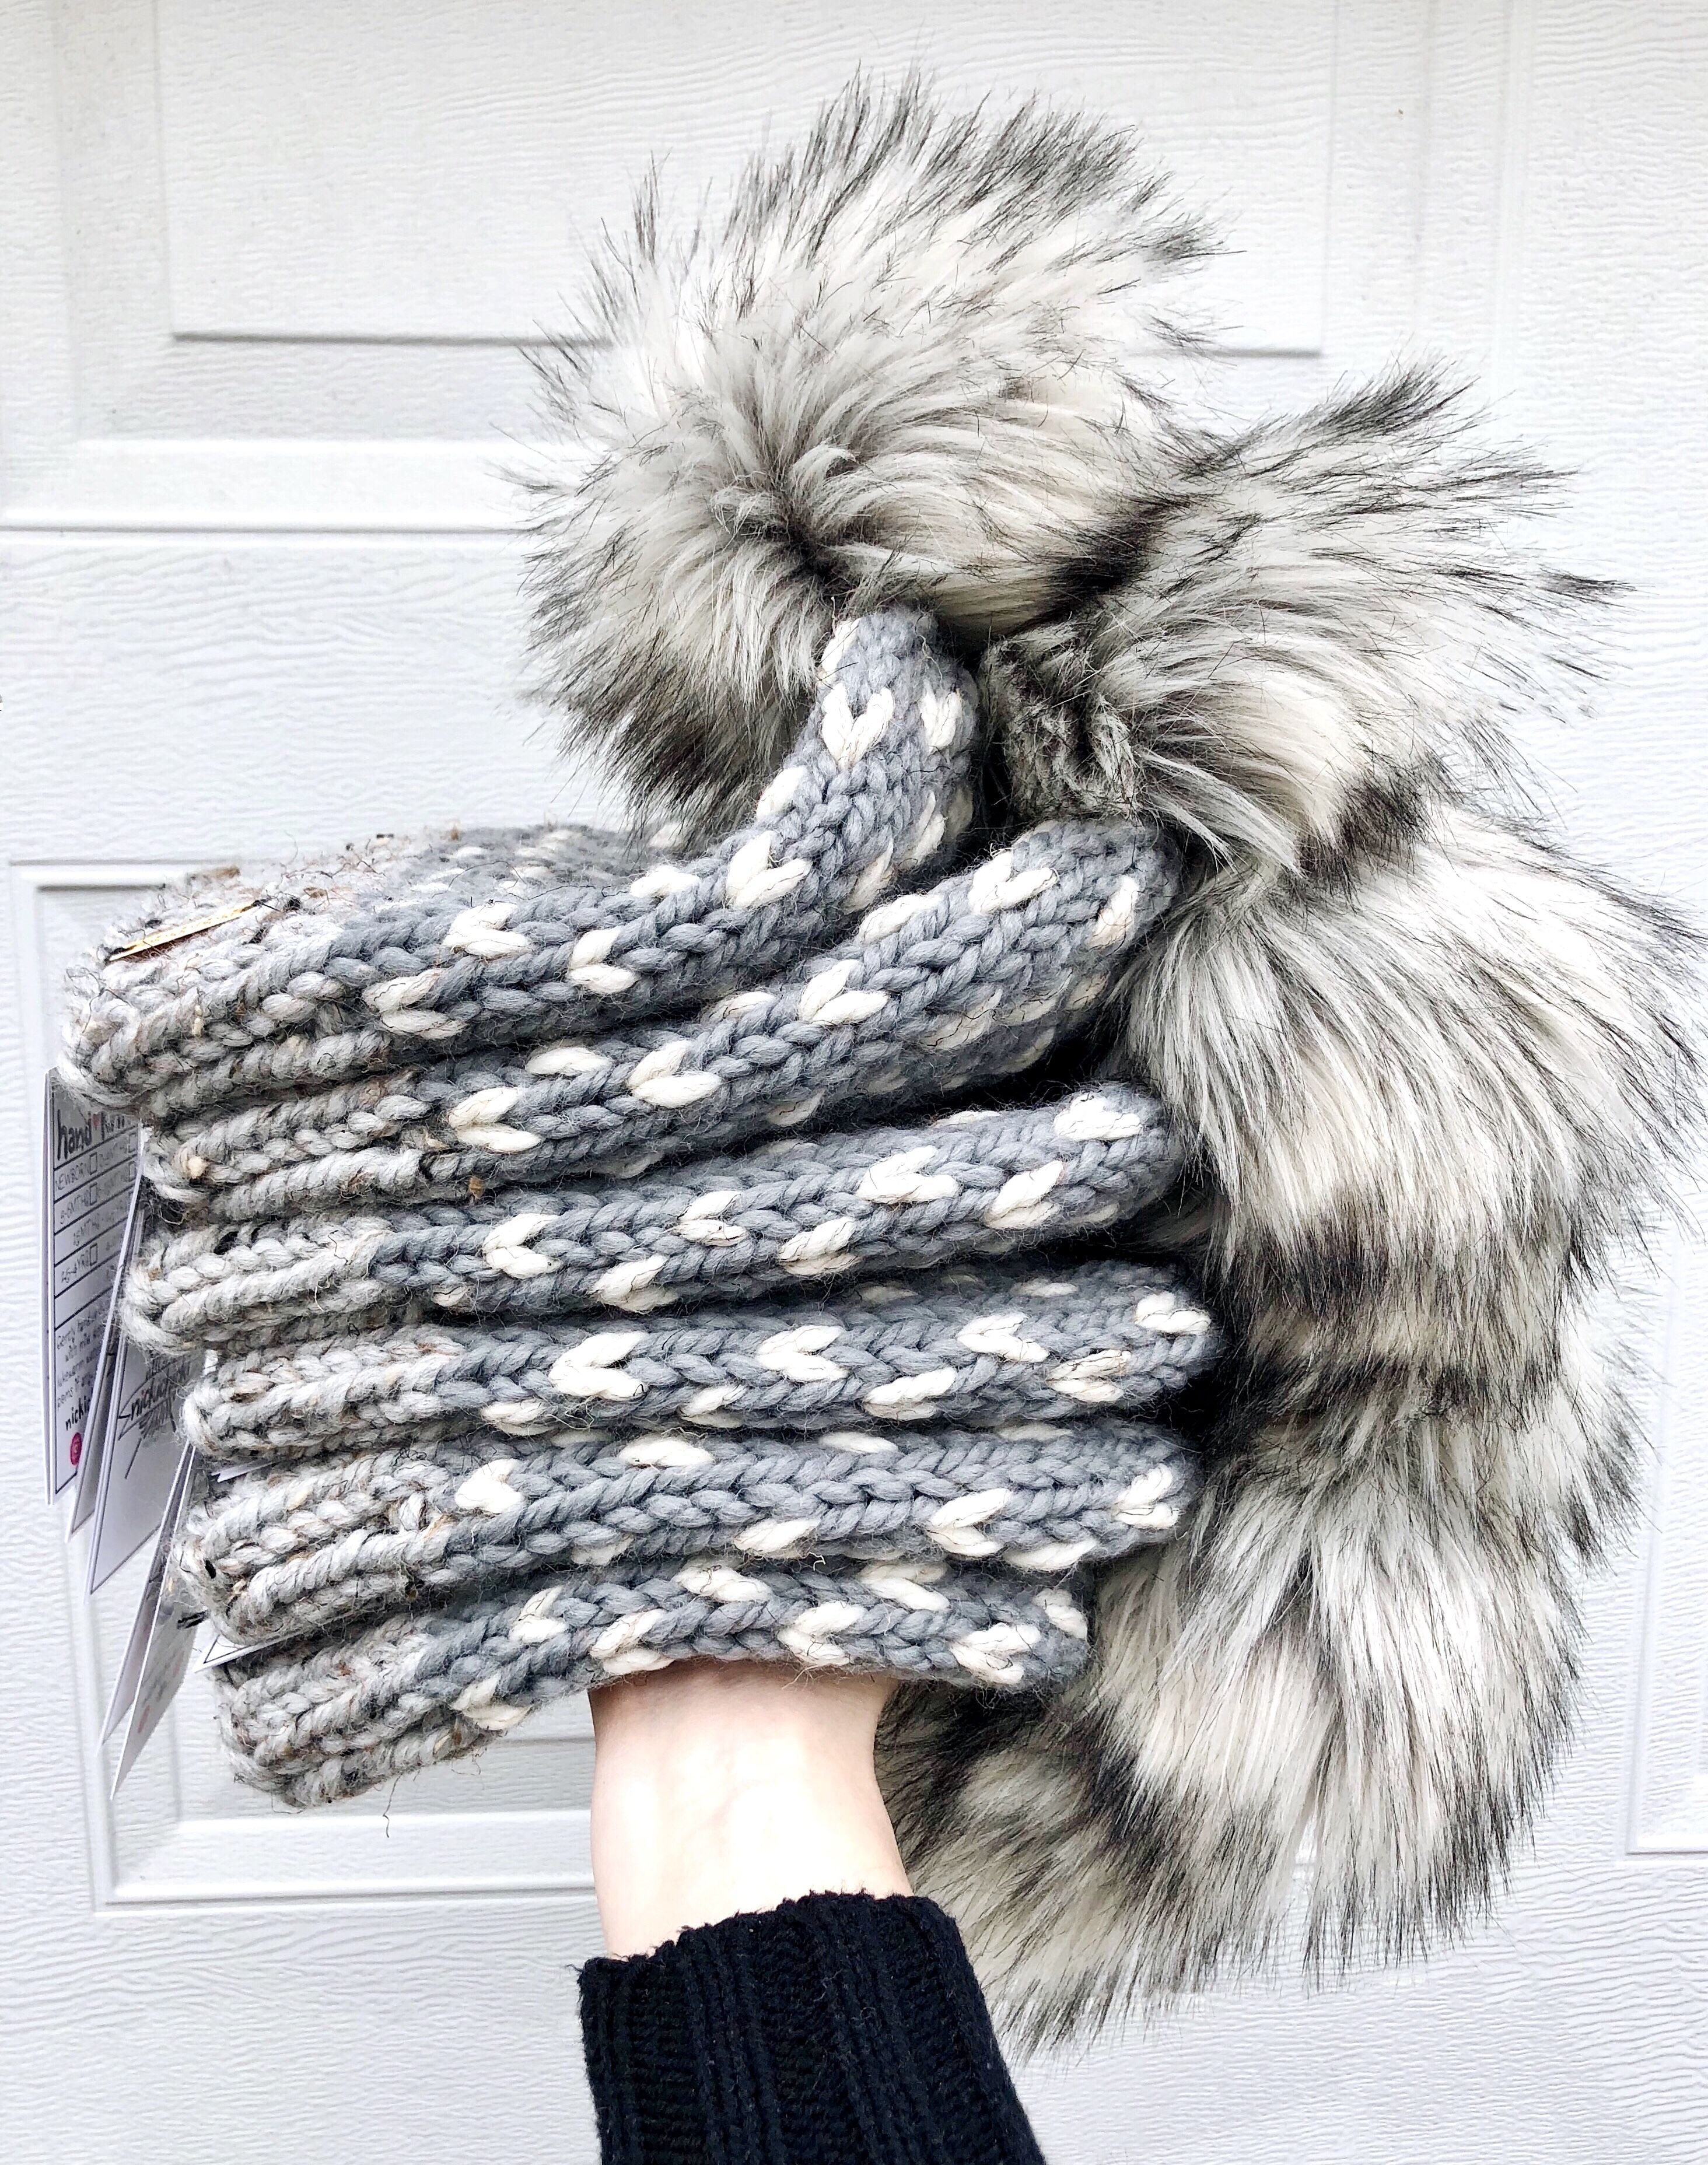 cd435291af17d6 #Nickichicki Shades of Gray Grey faux fur beanie hat. Fall winter womens  style. Cozy. Hygge. Small women owned business. Handmade. Gray hat. Grey hat .